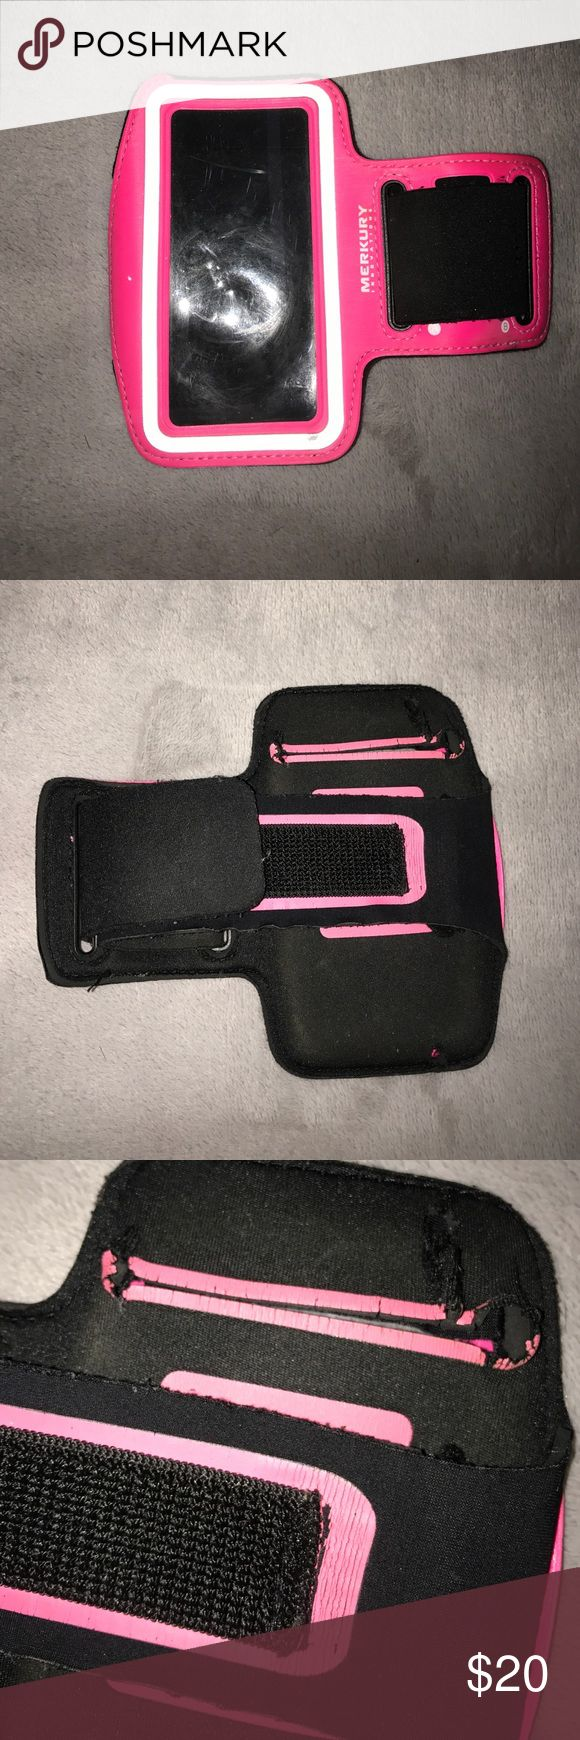 iPhone 5 armband Workout armband. Fits iPhone 5. Black and dark pink. Adjustable. Slot for key. Great usable condition. Some stretching around phone insert slot but phone doesn't fall out. Reflective strip around screen. merkury innovations Accessories Phone Cases